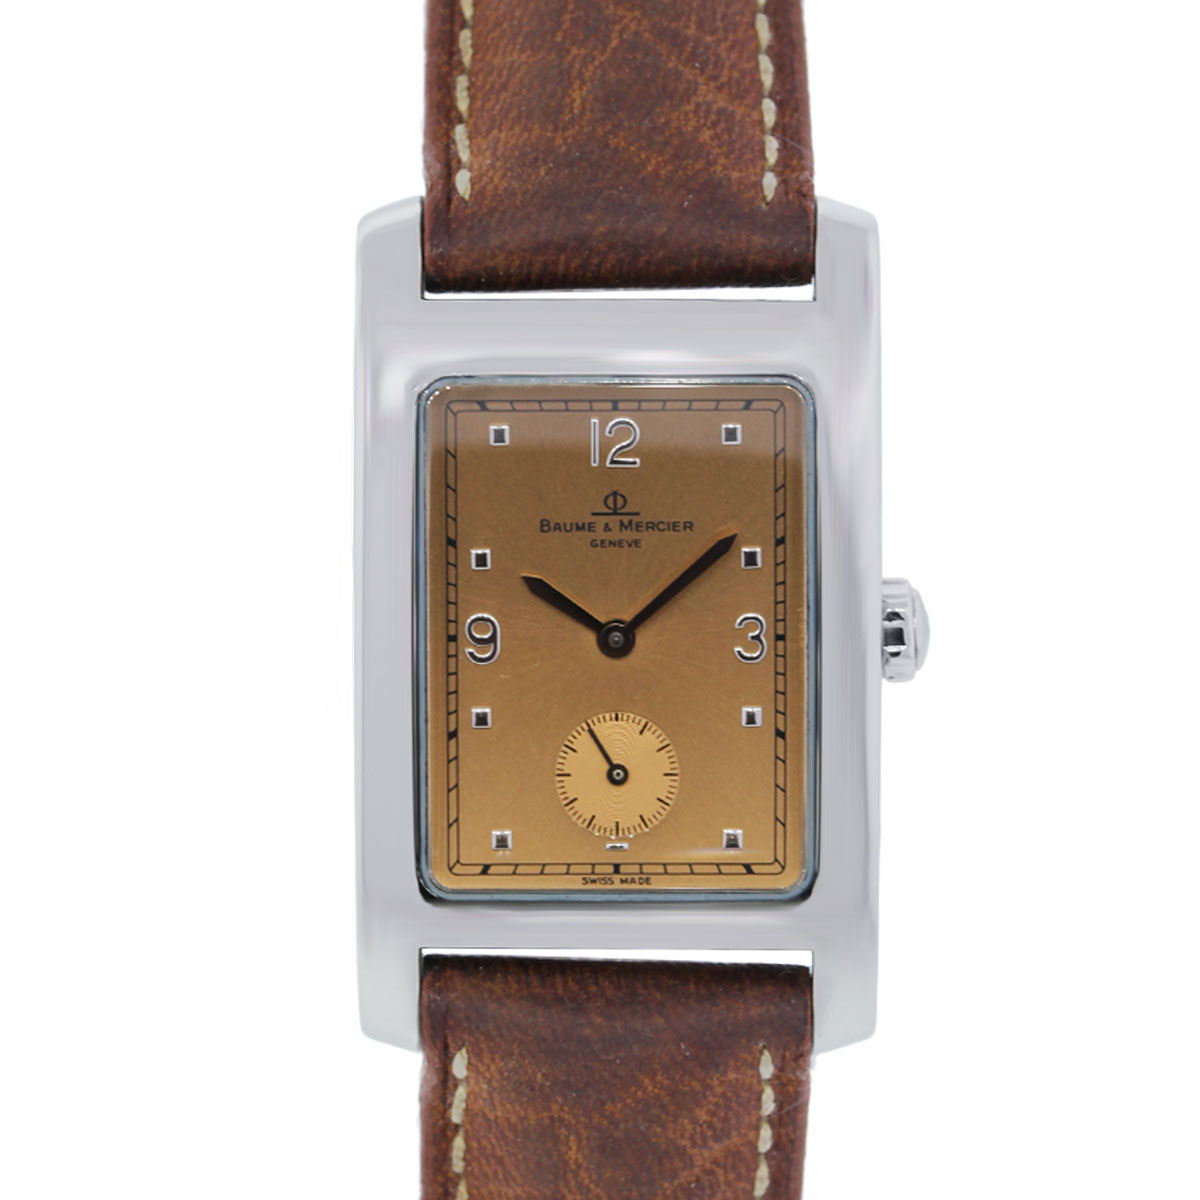 You are viewing this Baume Mercier Hampton on Leather Strap Watch!